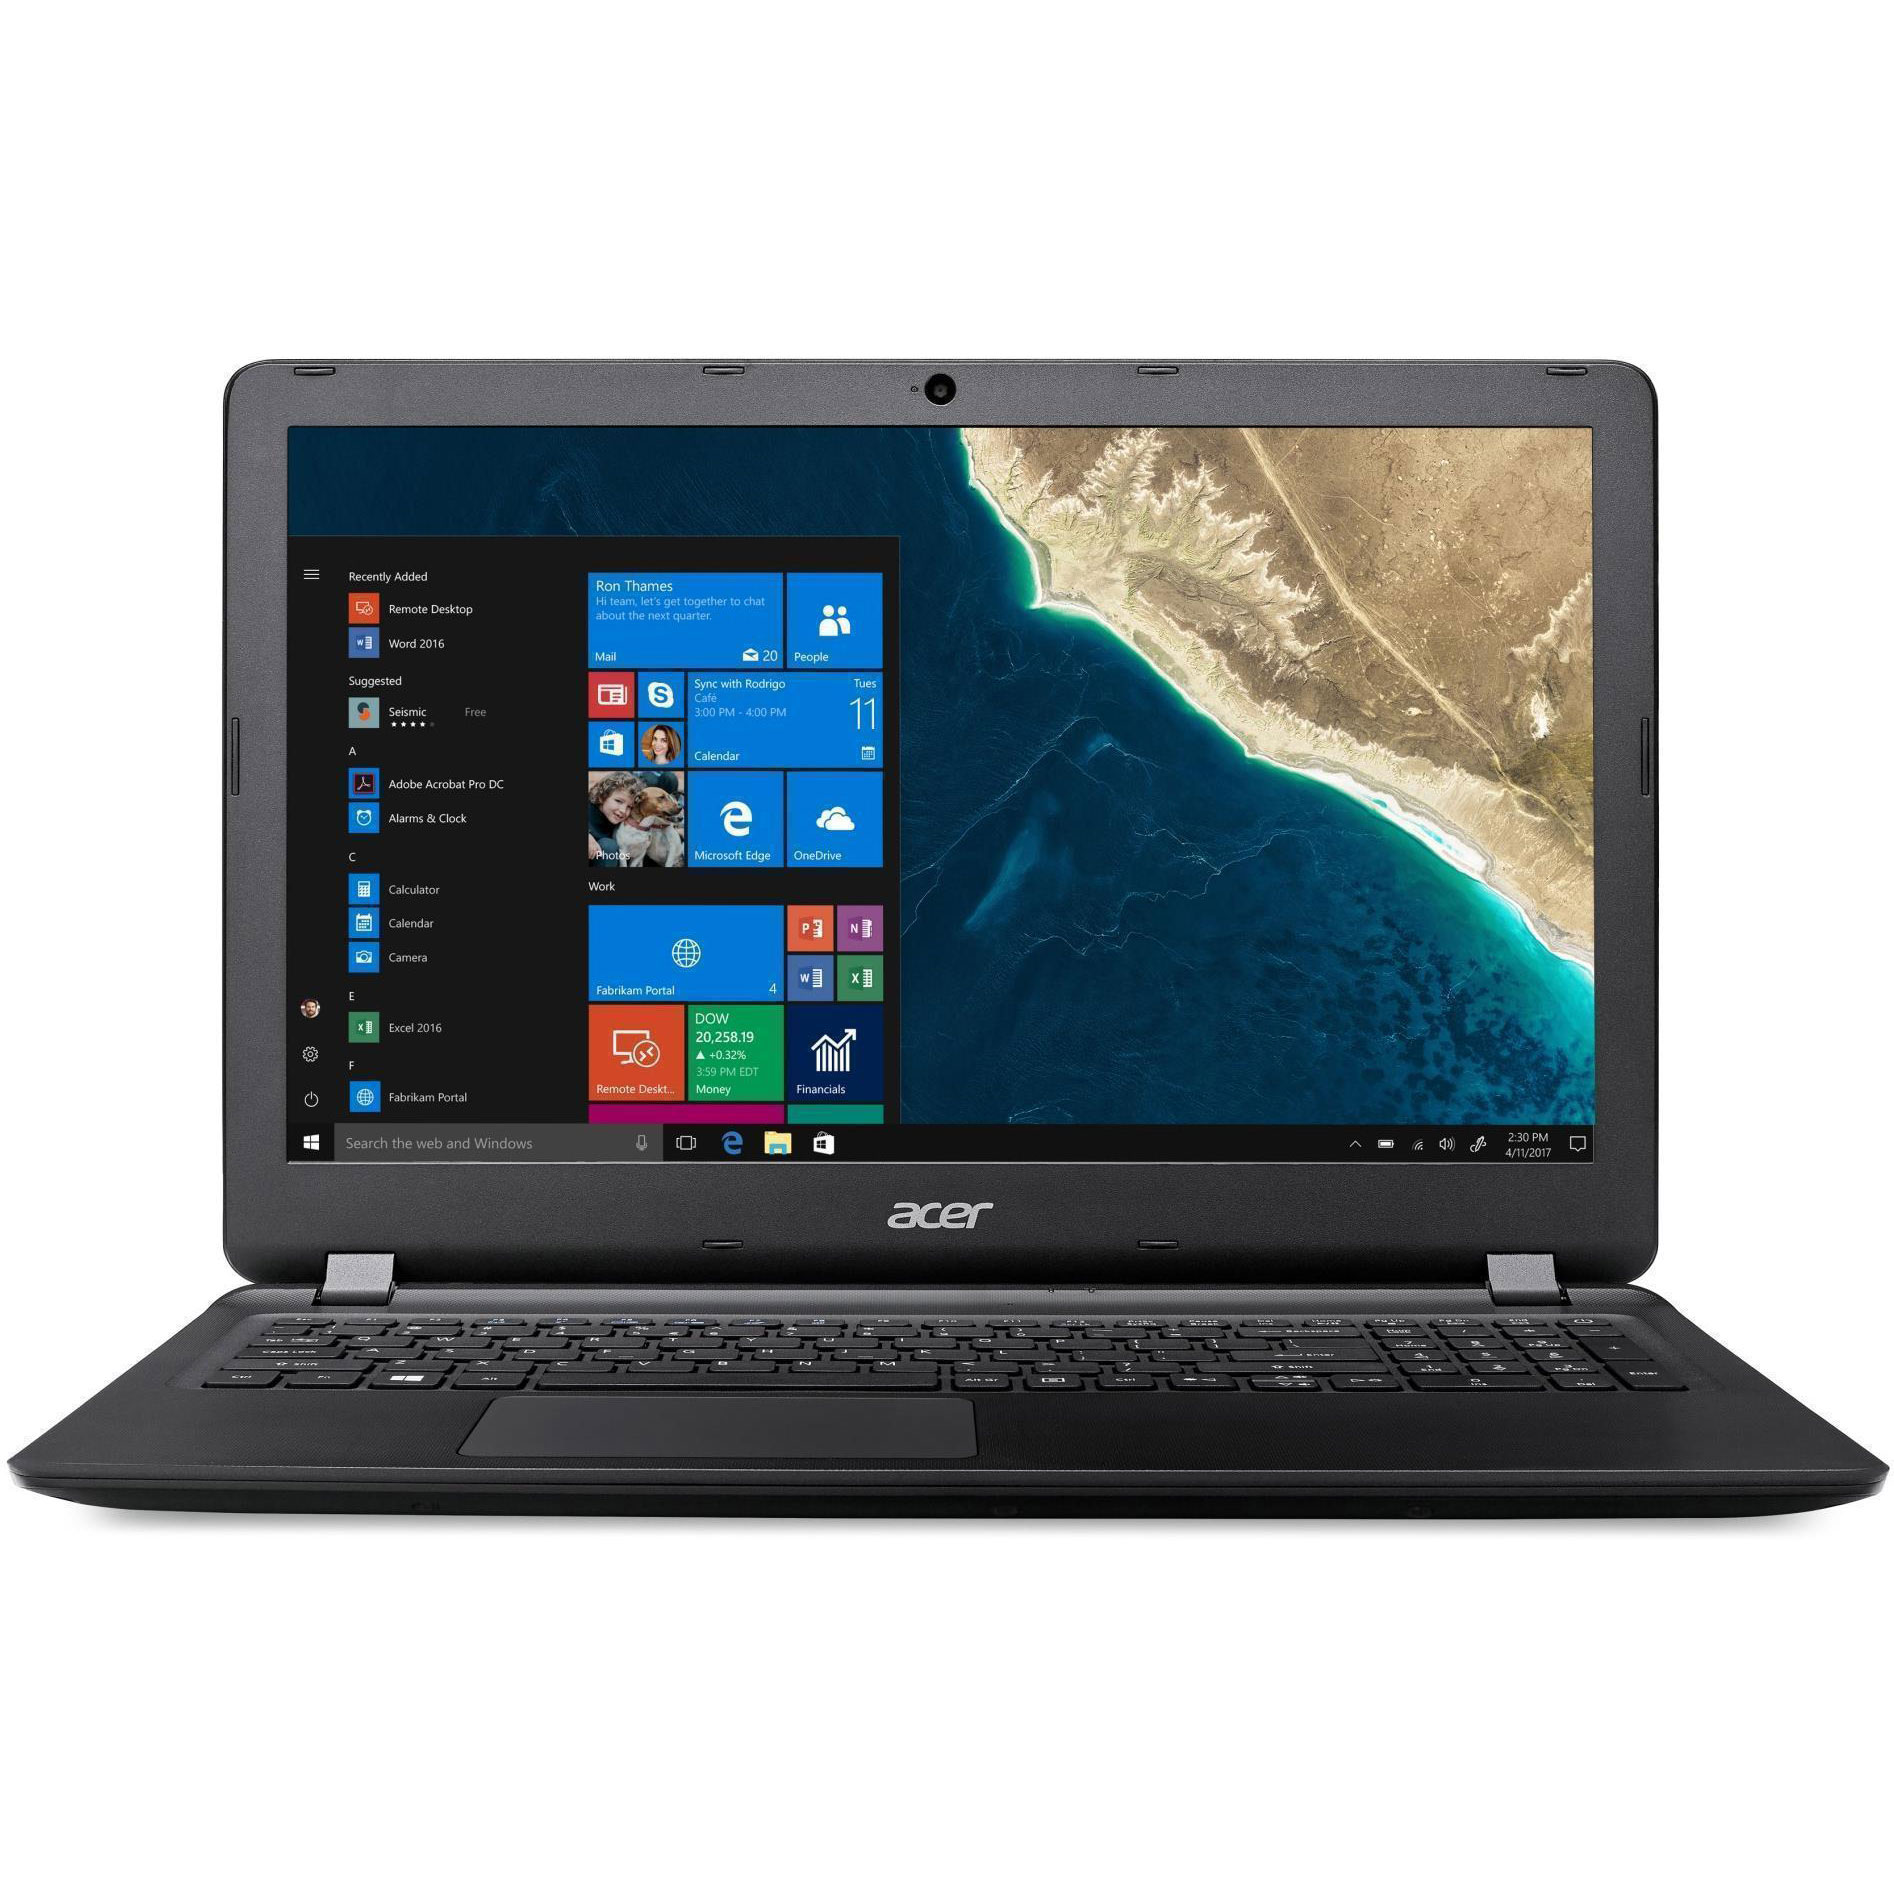 Extensa 2540 - 15.6in - i3 6006u - 4GB Ram - 128GB - Win10 Home